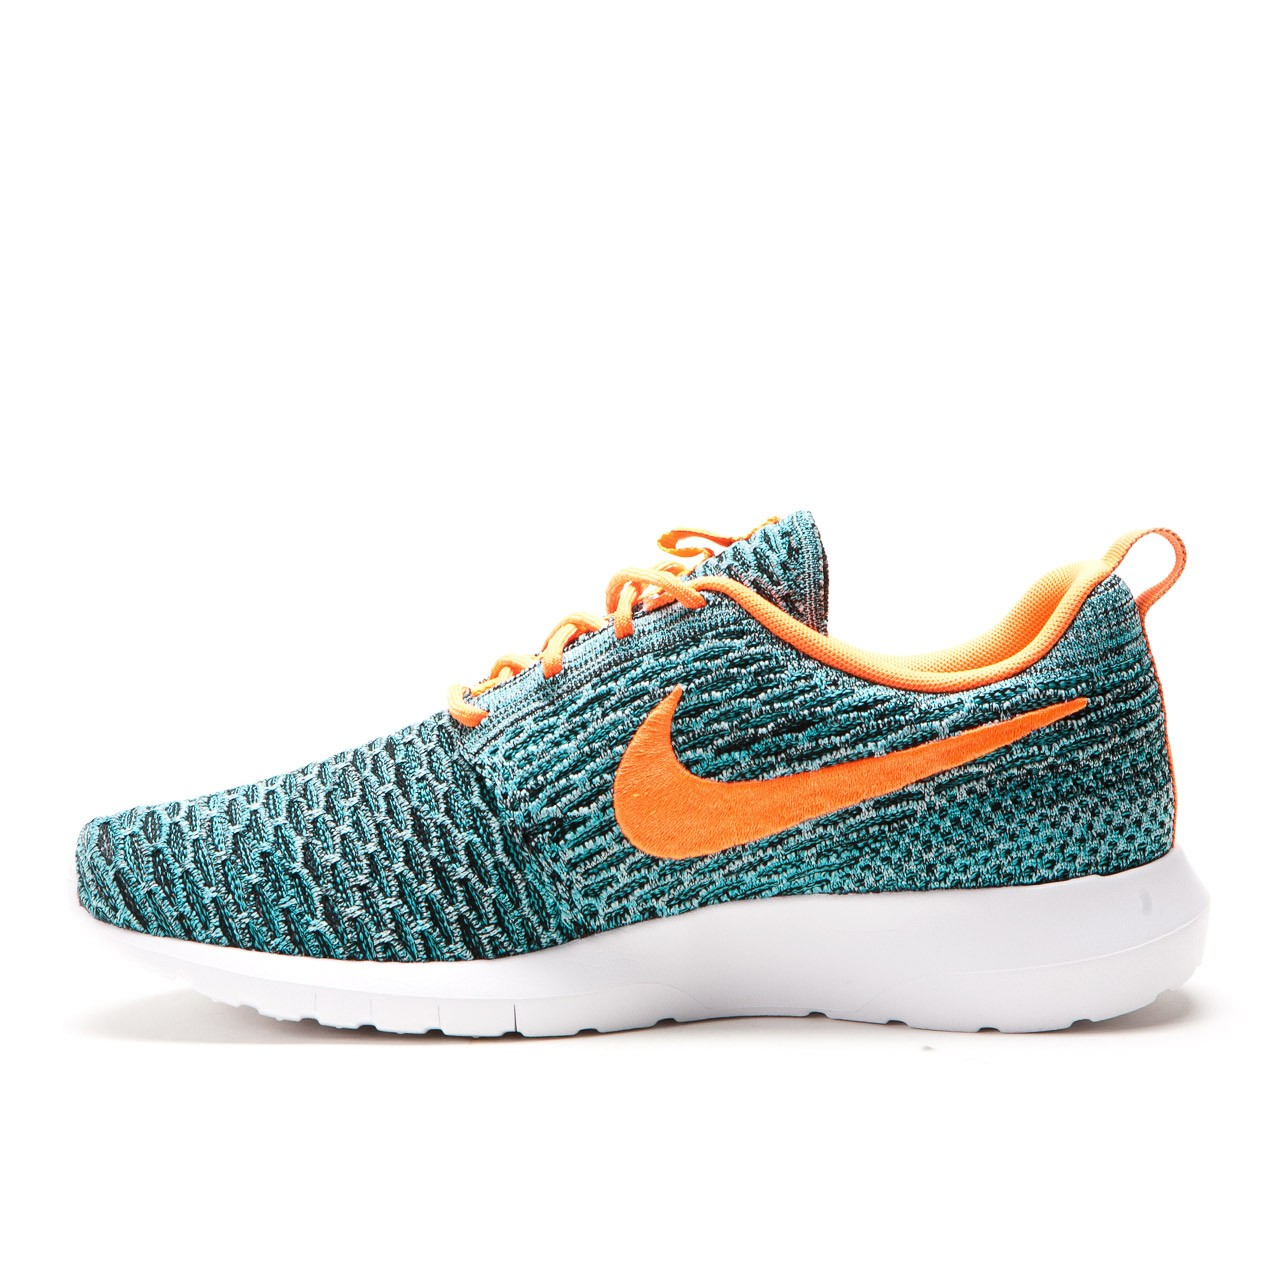 nike roshe flyknit run total orange hyper jade. Black Bedroom Furniture Sets. Home Design Ideas